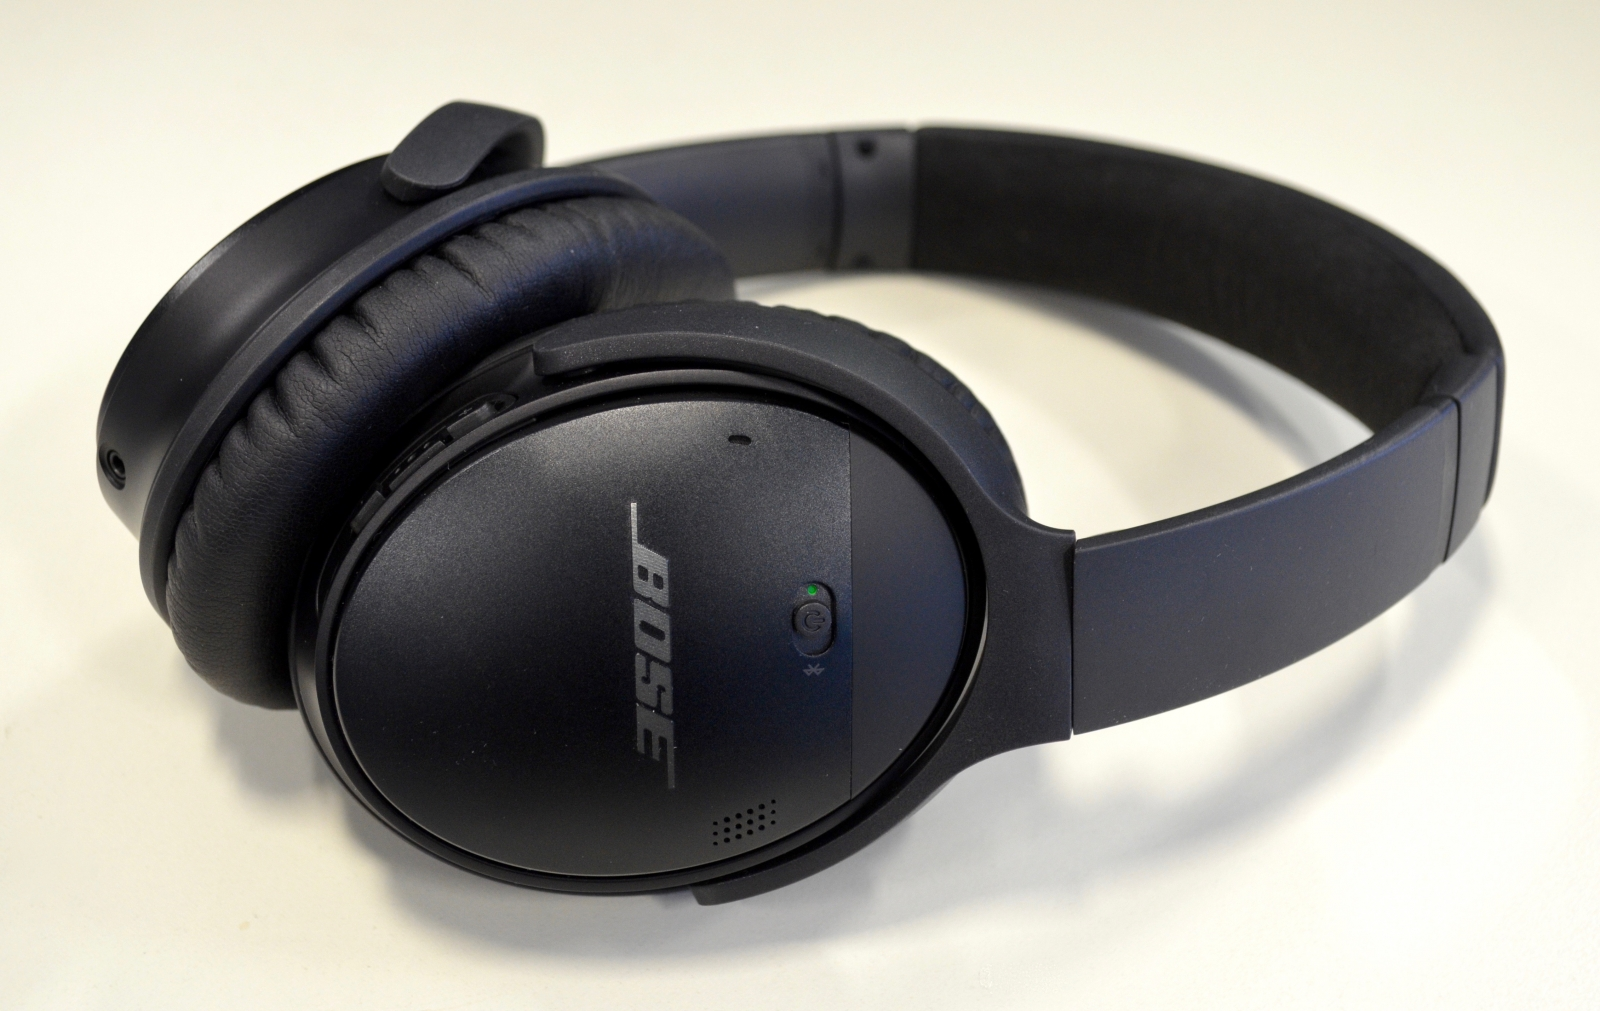 Bose QuietComfort 35 review: The wireless, noise-cancelling headphones ...